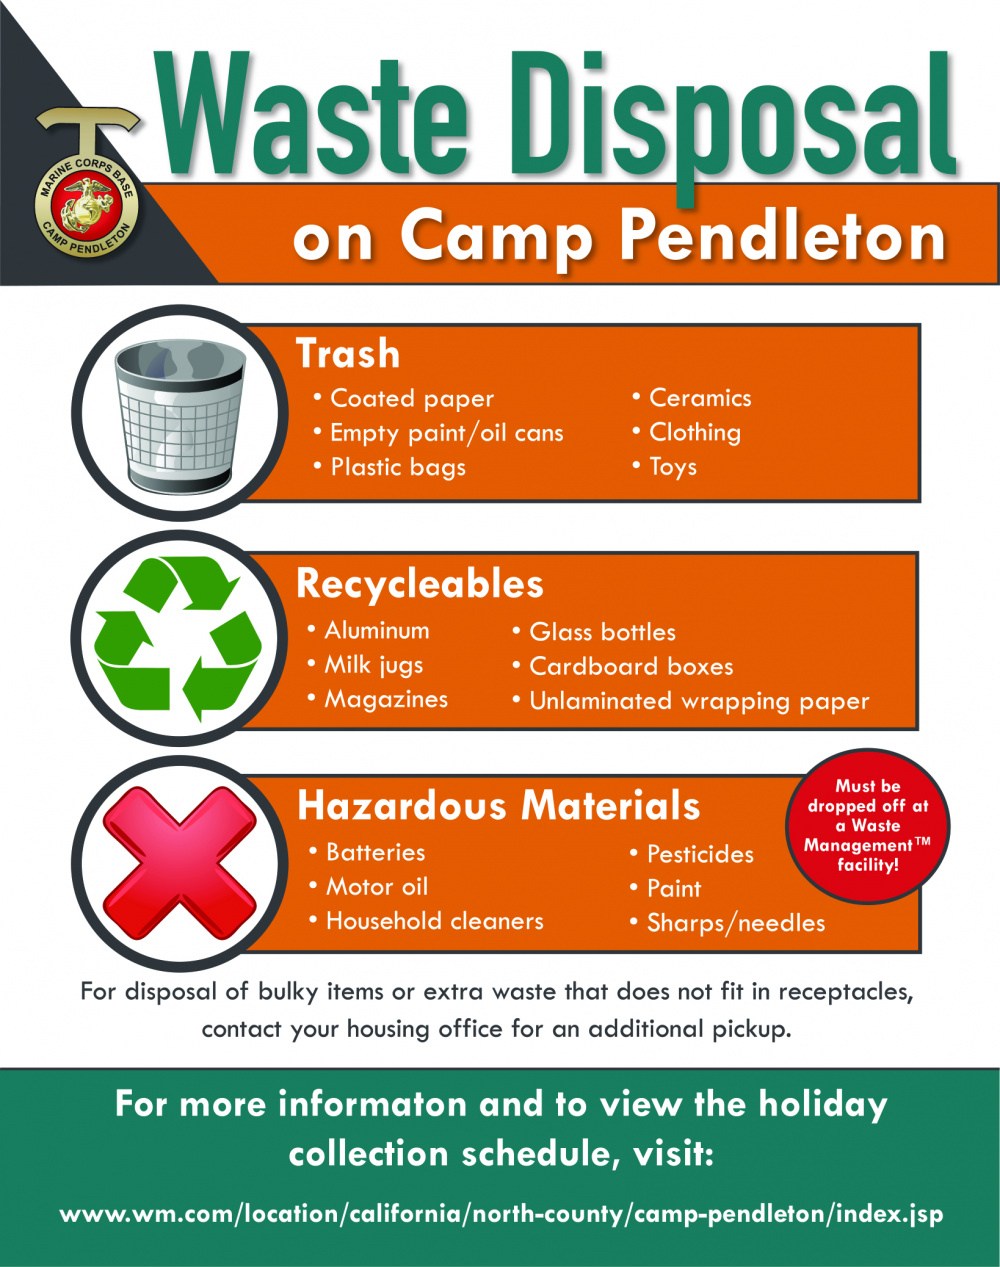 Waste Disposal on Camp Pendleton